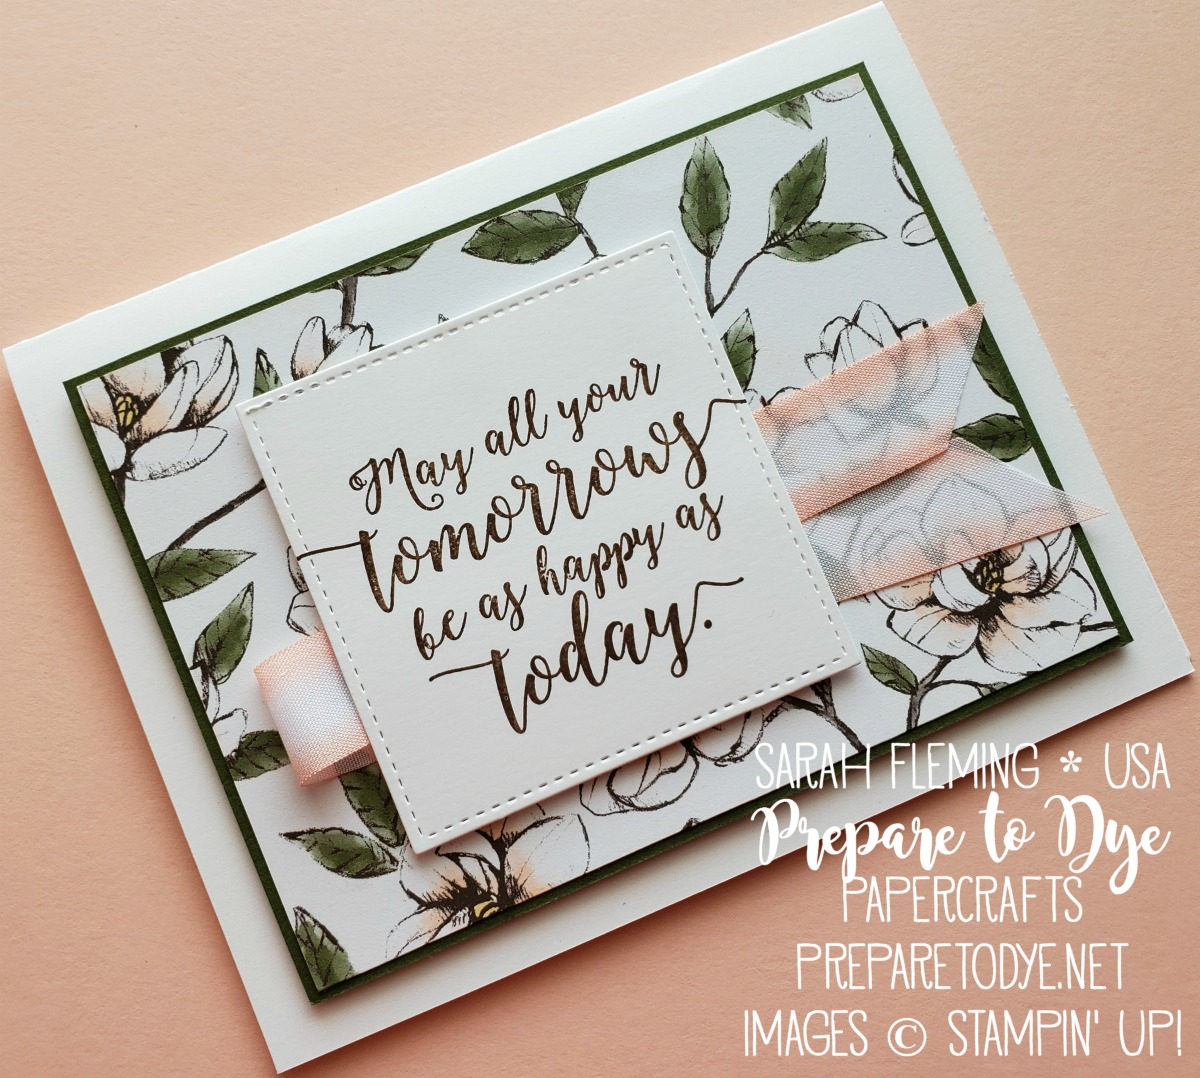 Stampin' Up! wedding, retirement, farewell card with Magnolia Lane paper, Colorful Seasons stamps - Sarah Fleming - Prepare to Dye Papercrafts